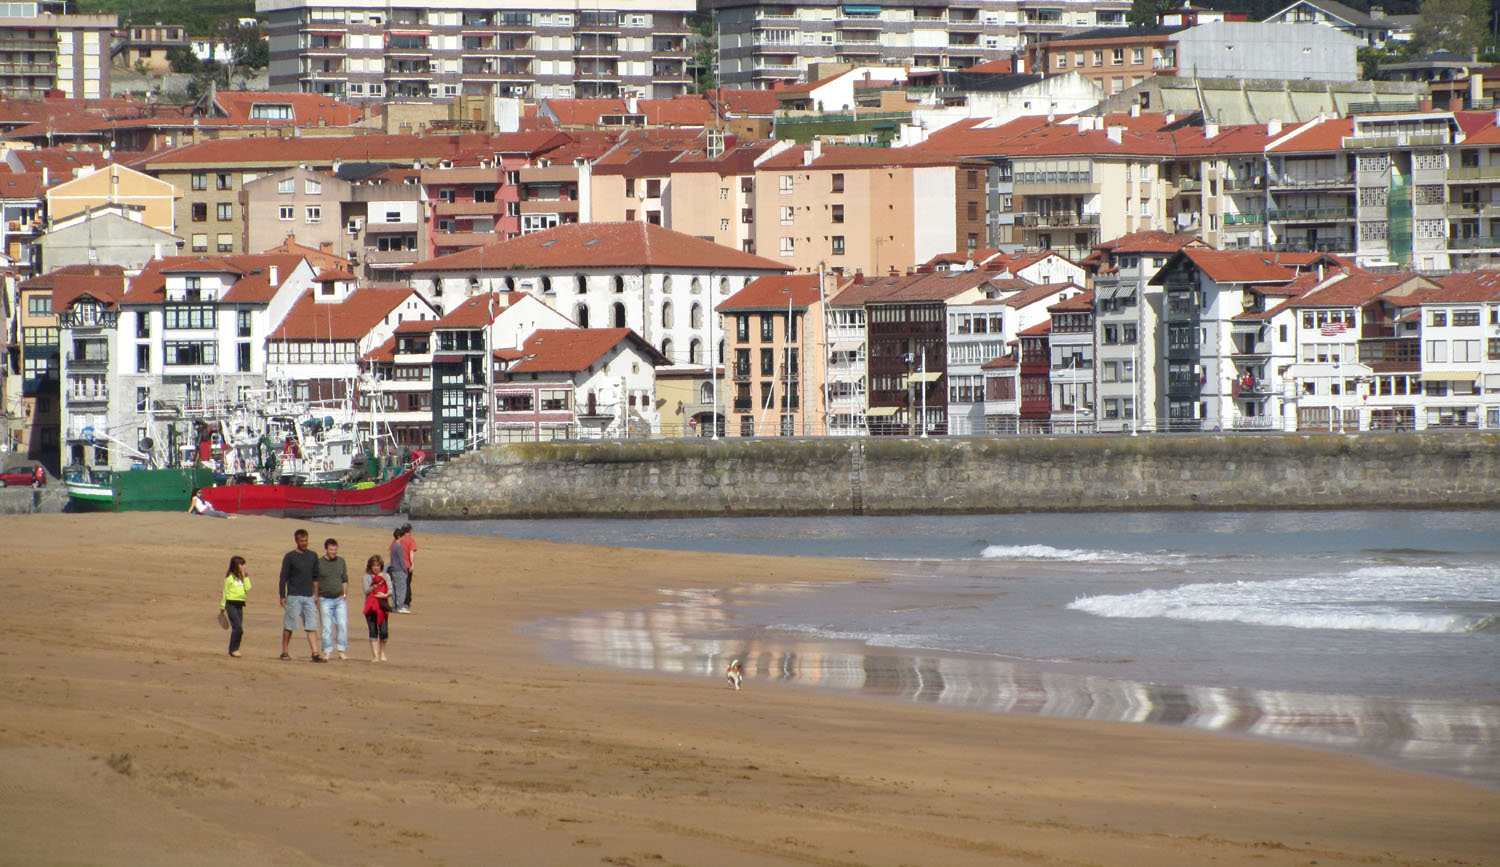 Spain-Lekeitio-Beach